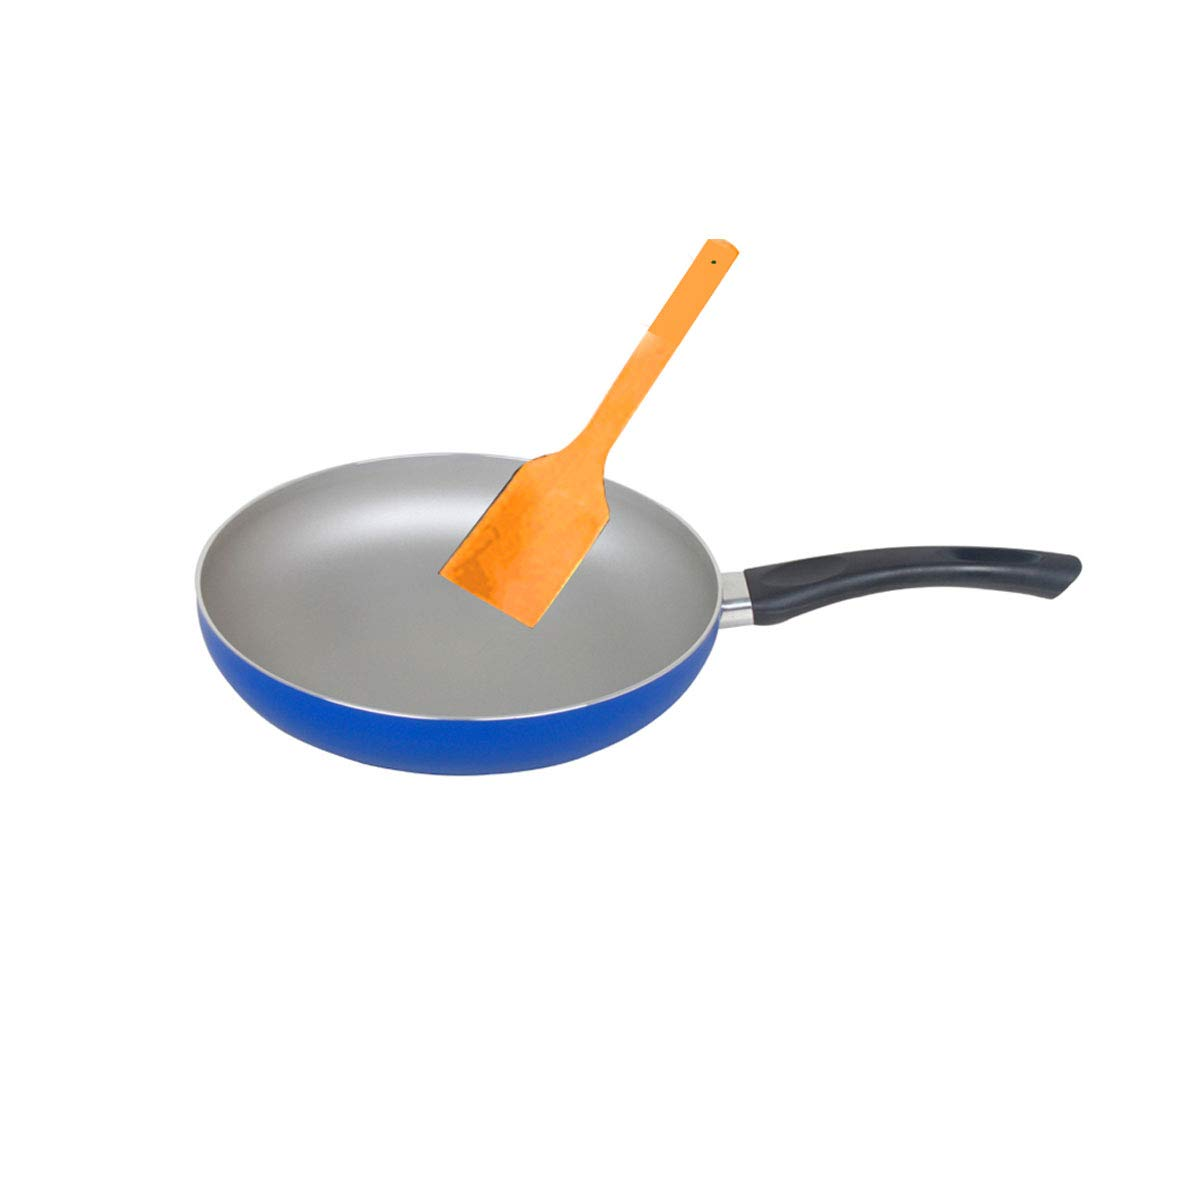 Shengshihuizhong 10-Inch Nonstick Induction Compatible Frying Pan, Skillet, Saute Pan,Less Fumes,Dishwasher Safe Oven Safe The latest style, simple (Color : Blue, Size : 10-Inch)